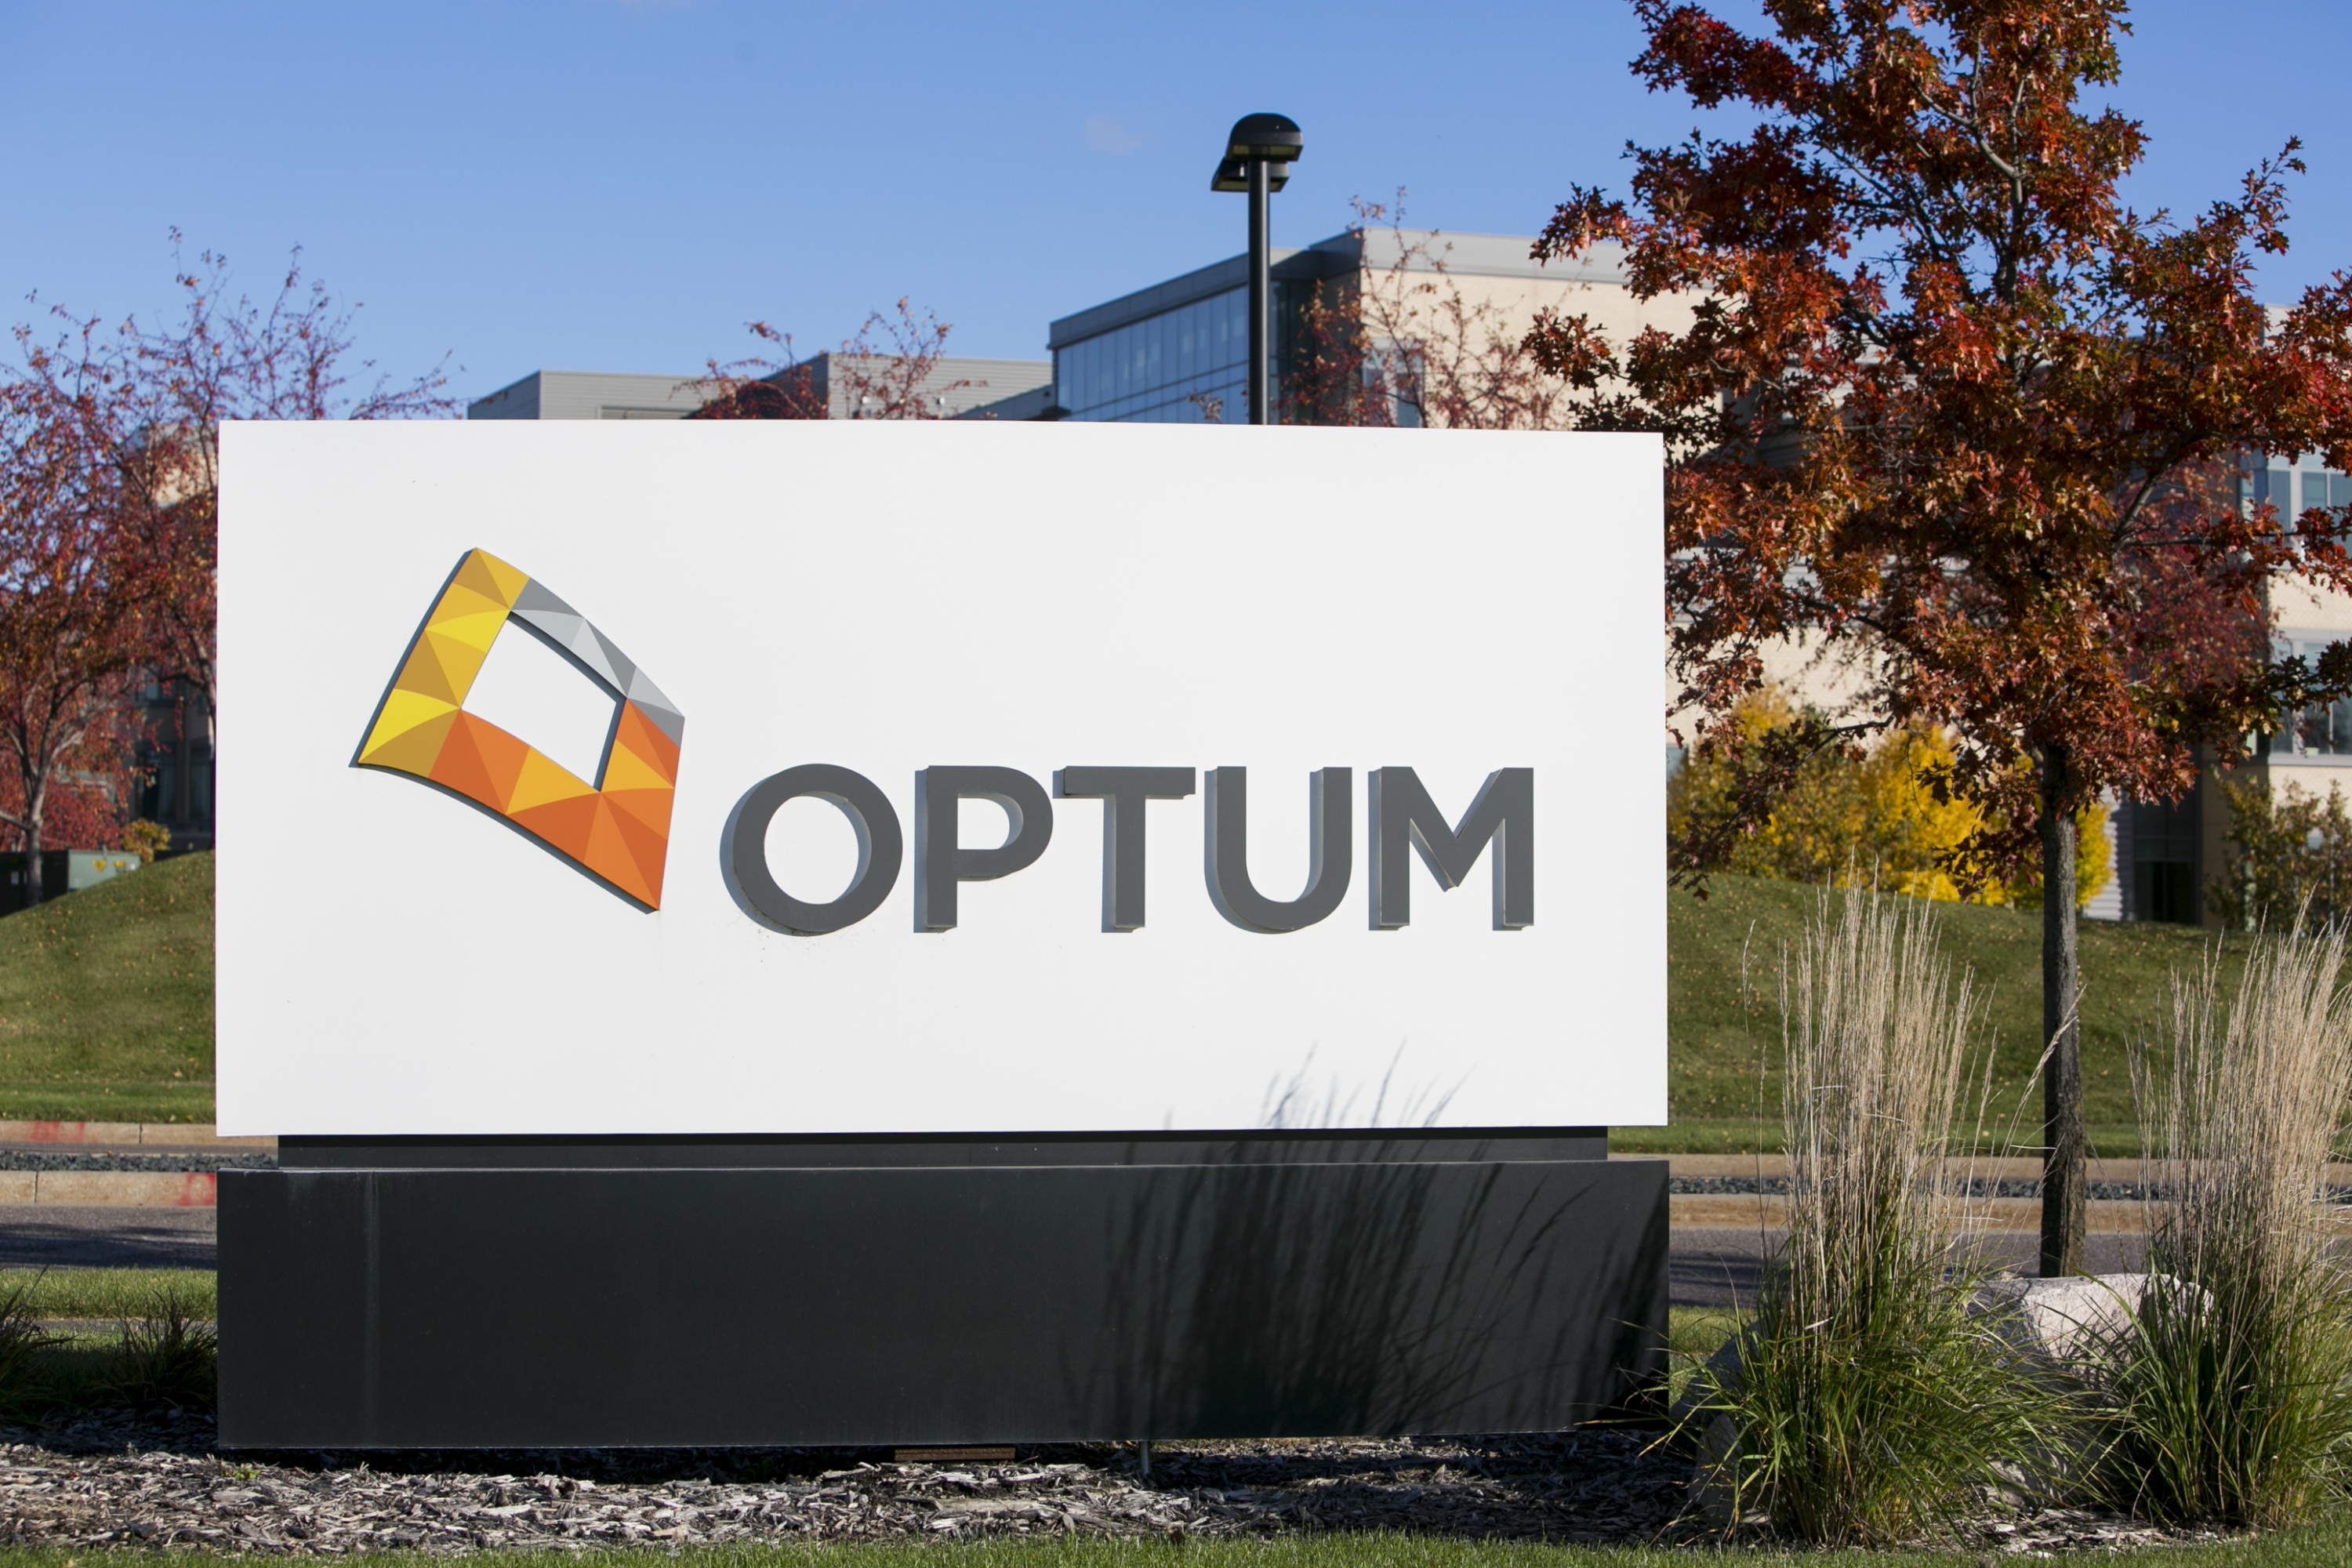 Advisory Board finalizes deal with UnitedHealth's Optum